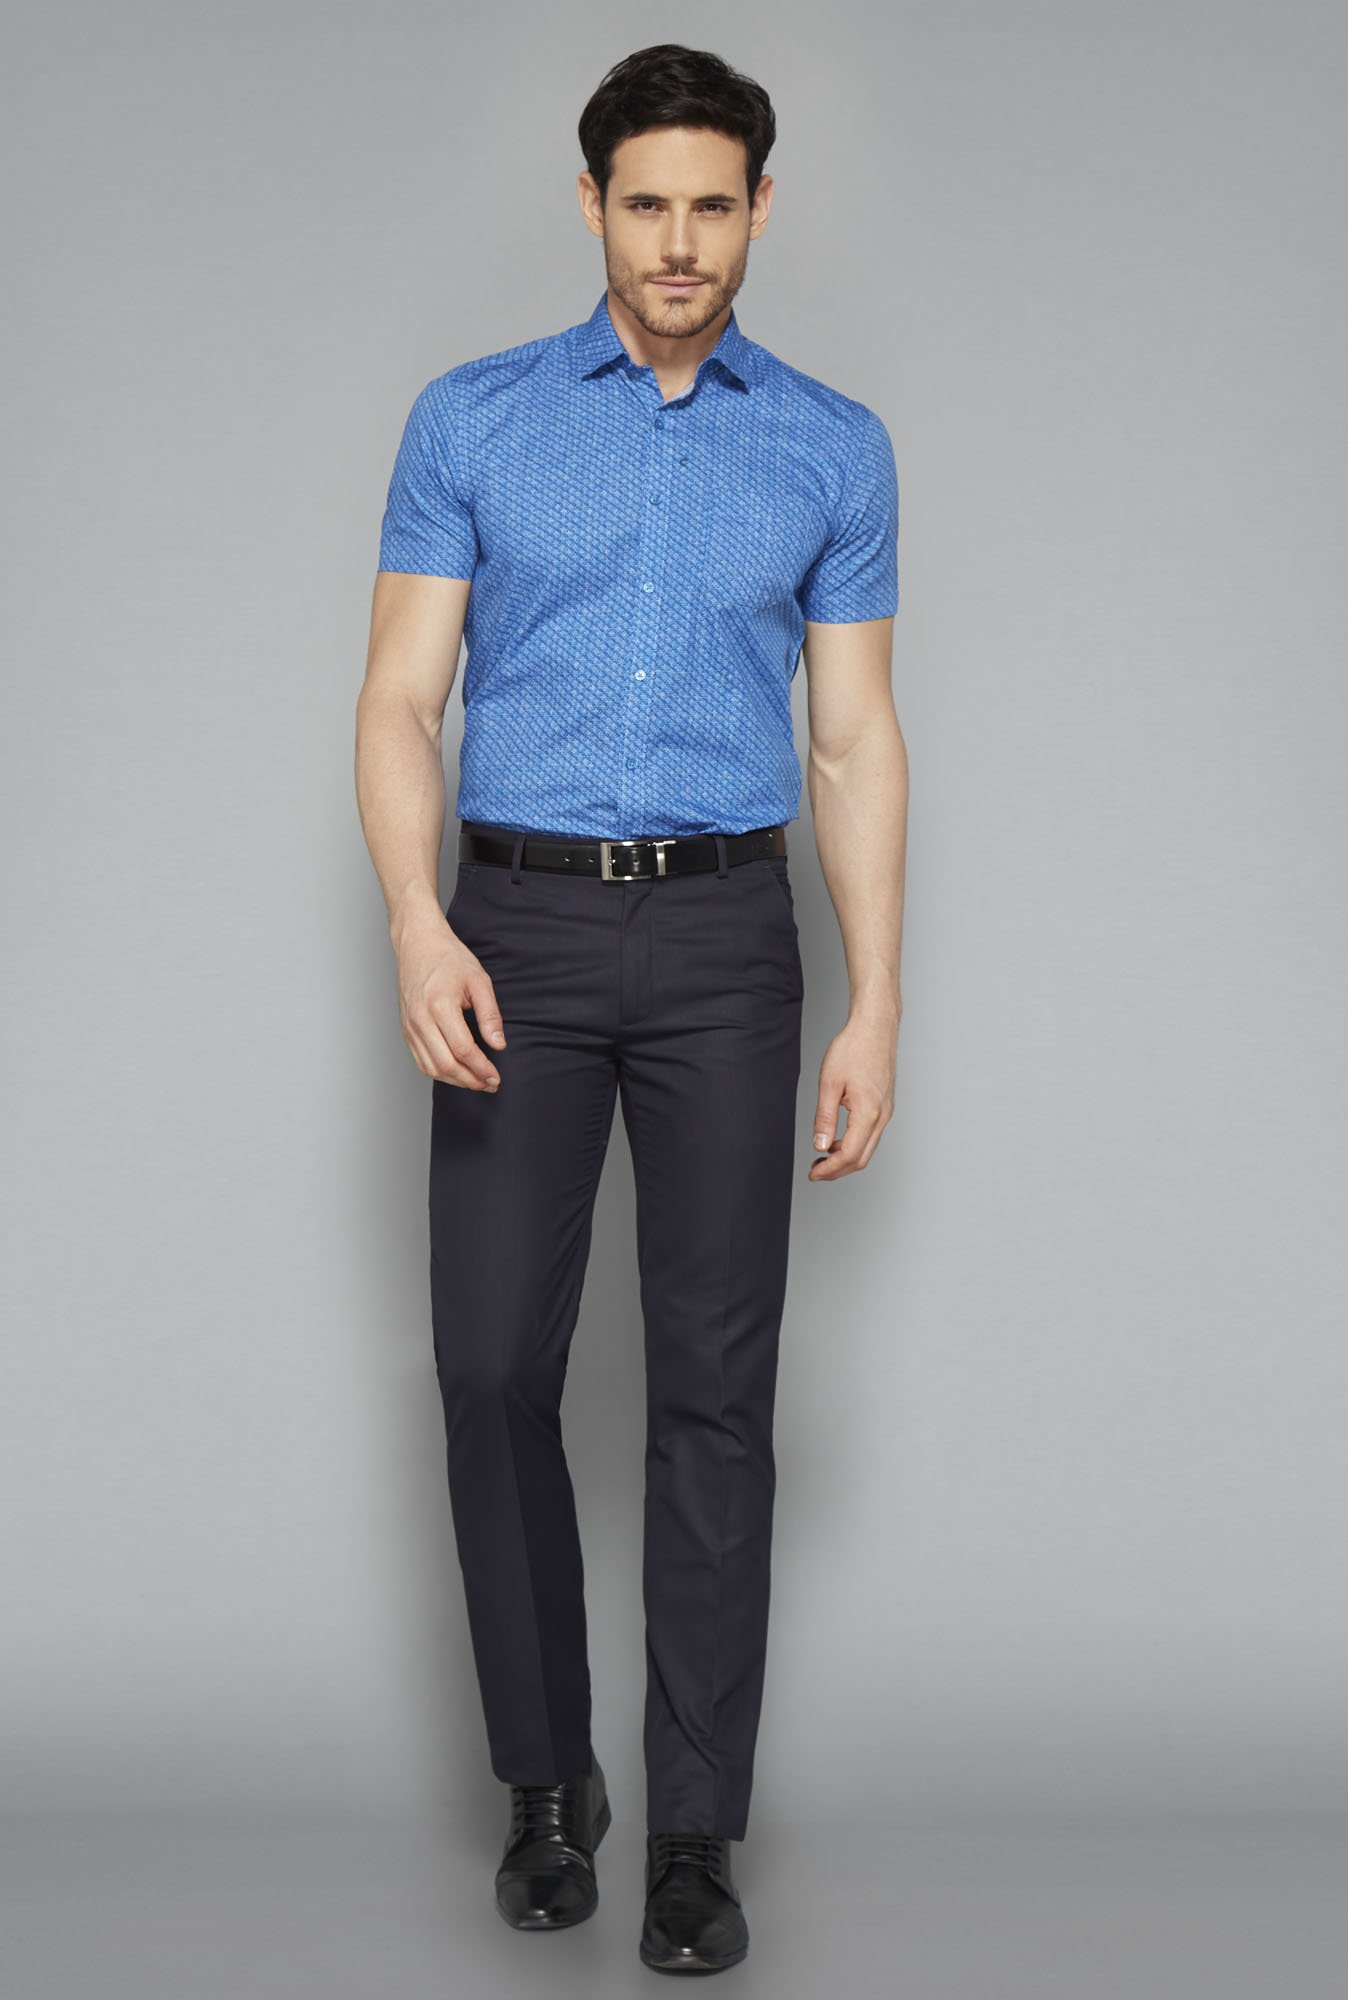 Weststreet Blue Printed Slim Fit Shirt